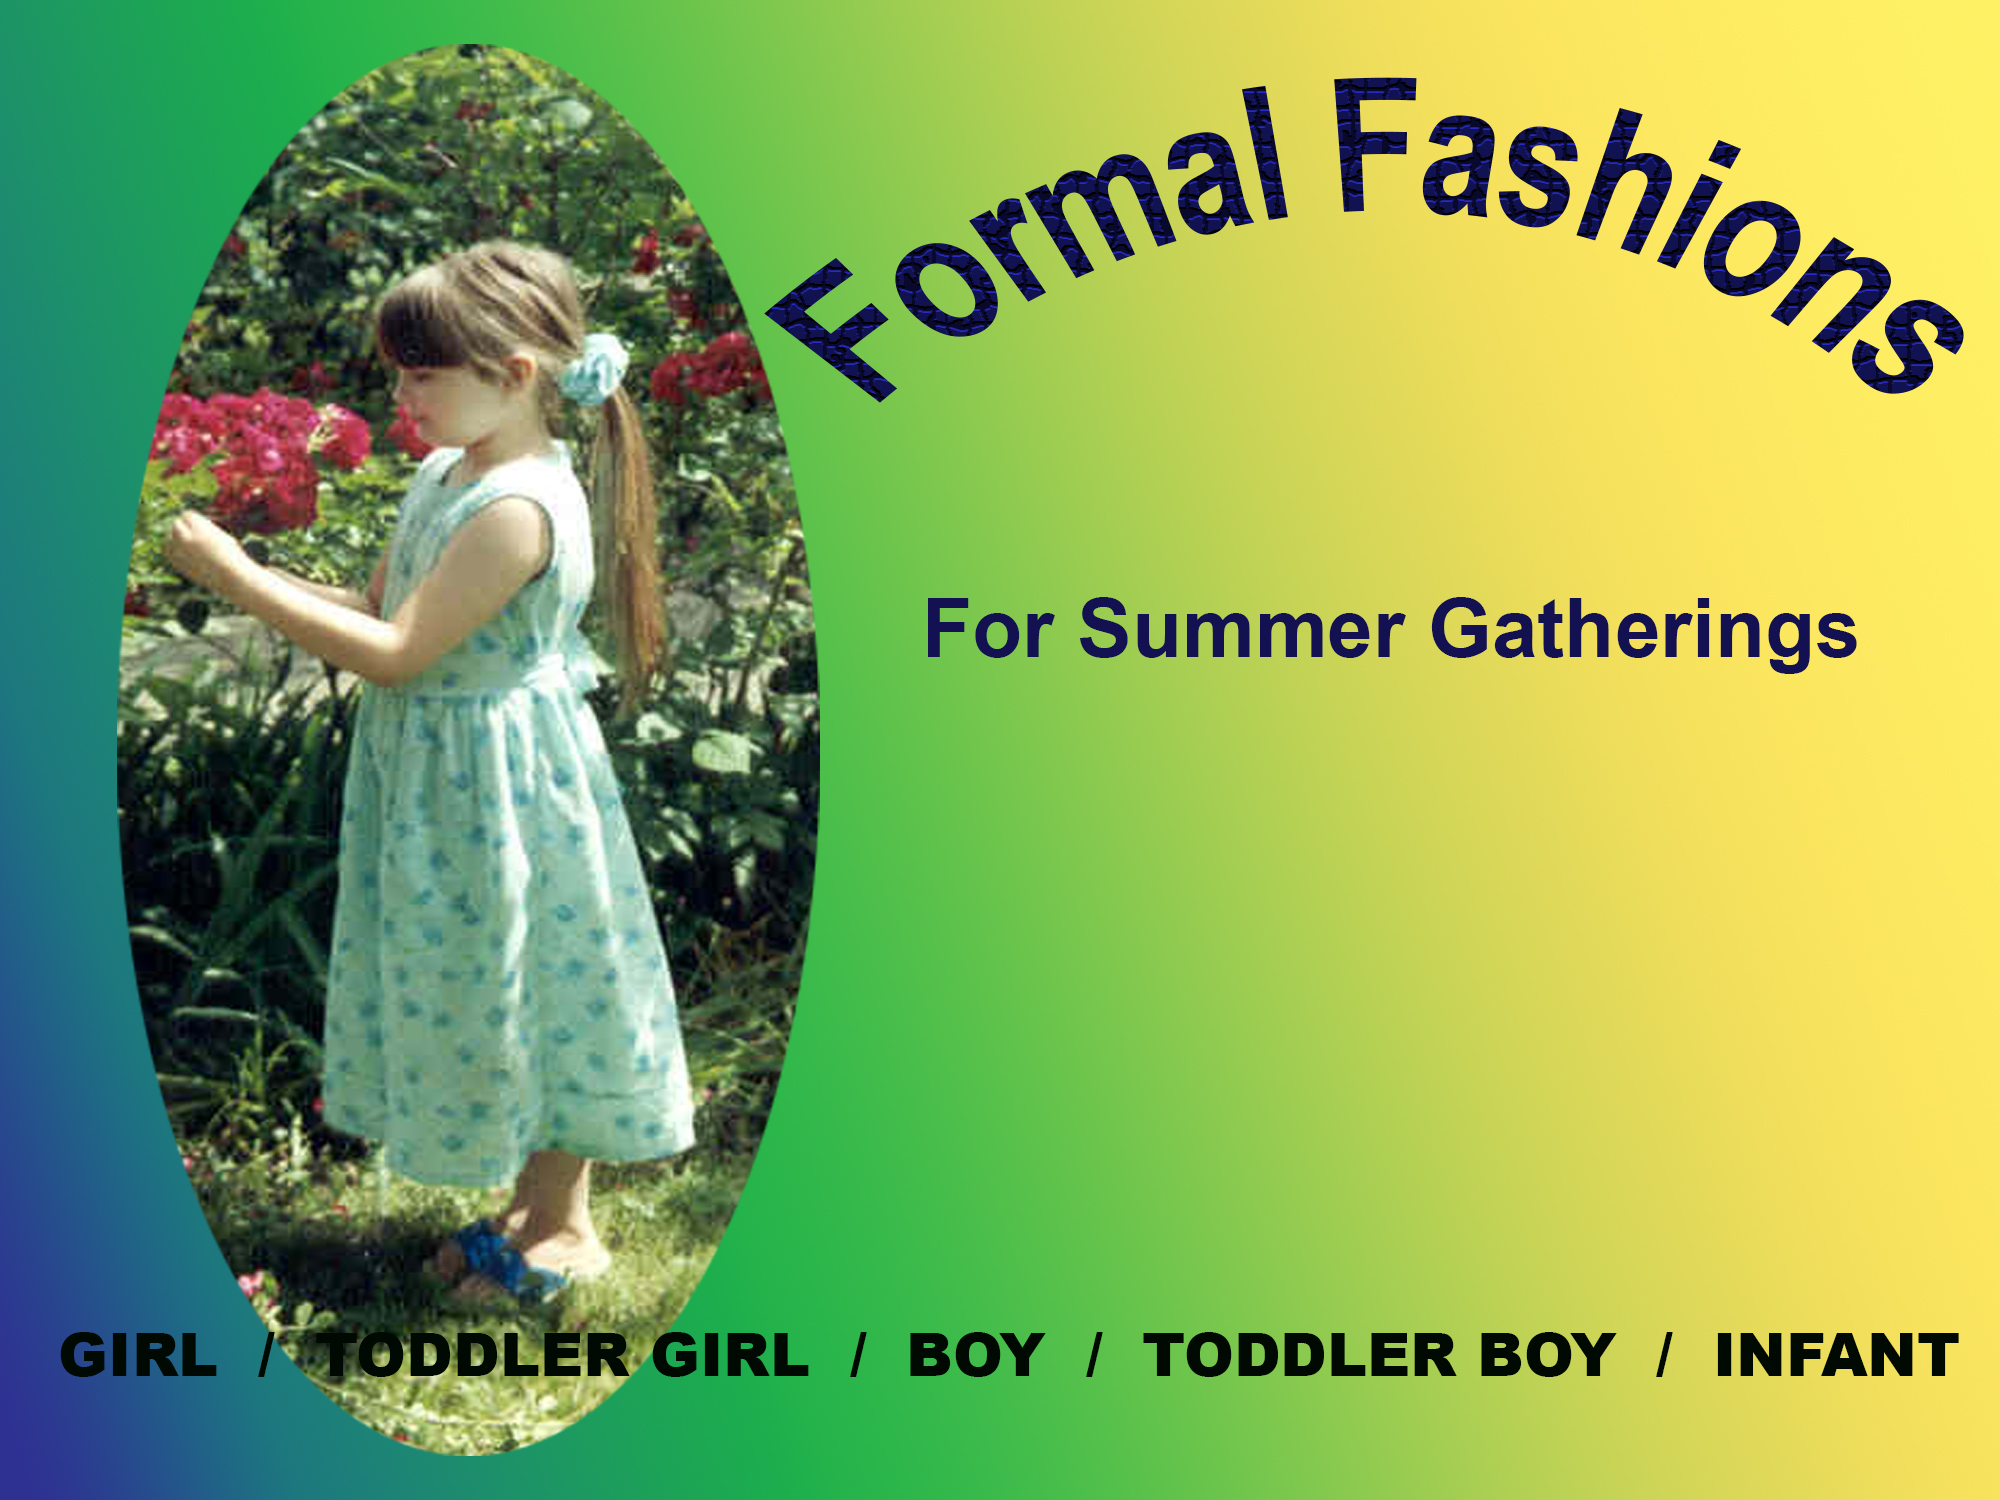 Rosebud Children's Fashions by Gothique Rose Apparel Formal Fashions - For Summer Gatherings